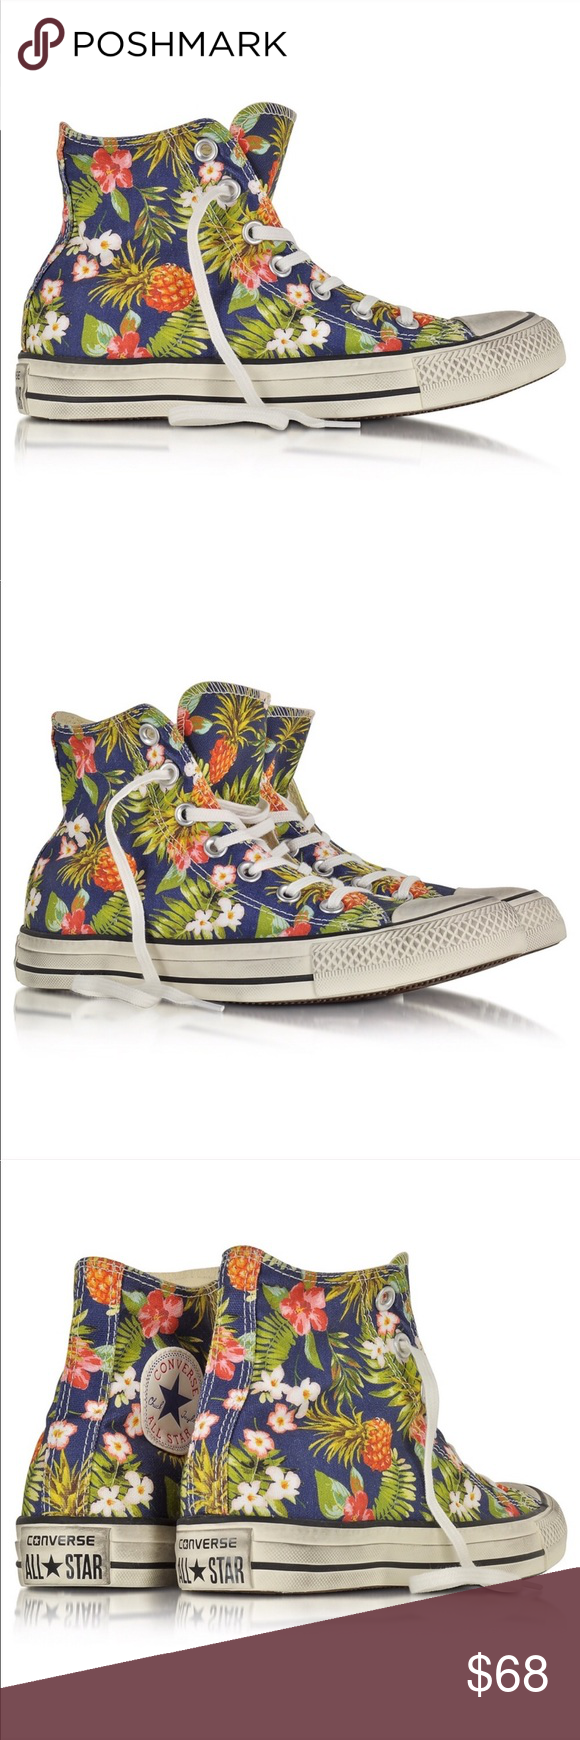 2243208535bb79 Converse All Star Canvas Pineapple Print Sneaker - LIMITED EDITION - Unisex  Shoe - Men s 11